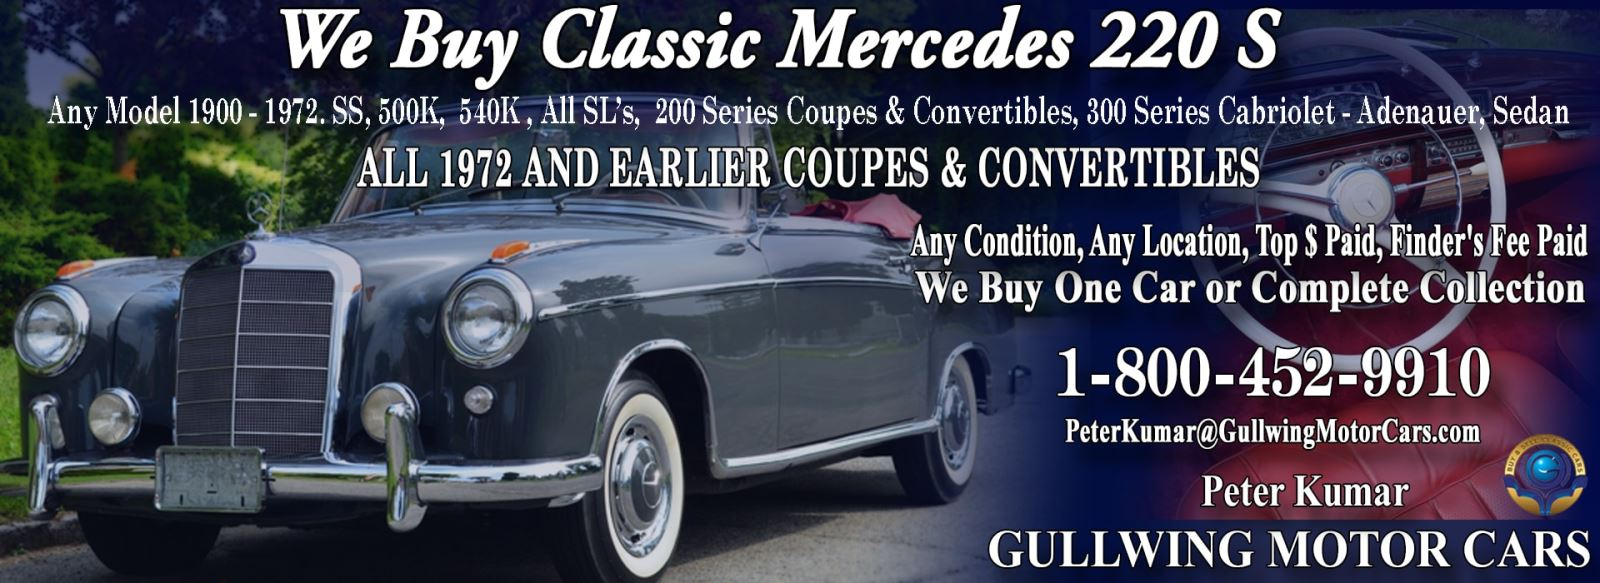 Classic Mercedes 220S for sale, we buy vintage Mercedes 220S. Call Peter Kumar. Gullwing Motor